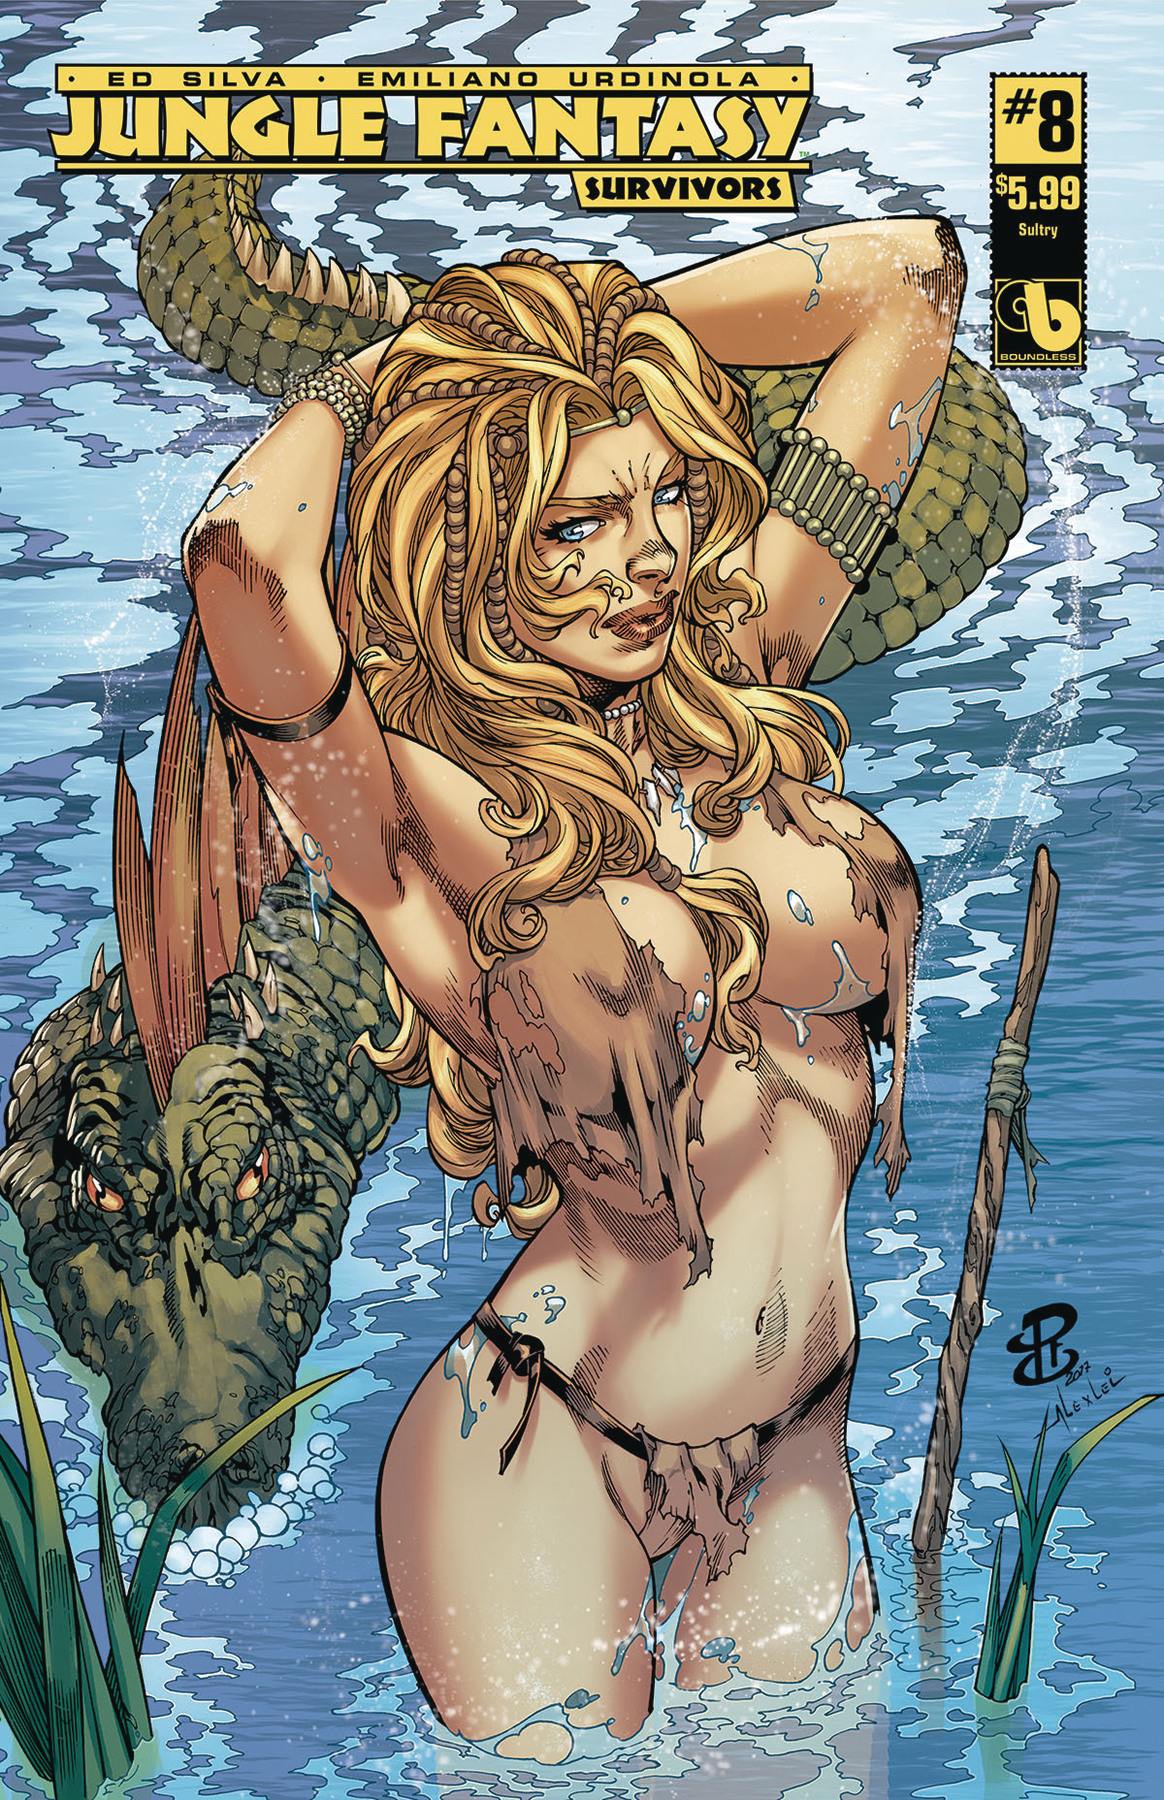 JUNGLE FANTASY SURVIVORS #8 SULTRY